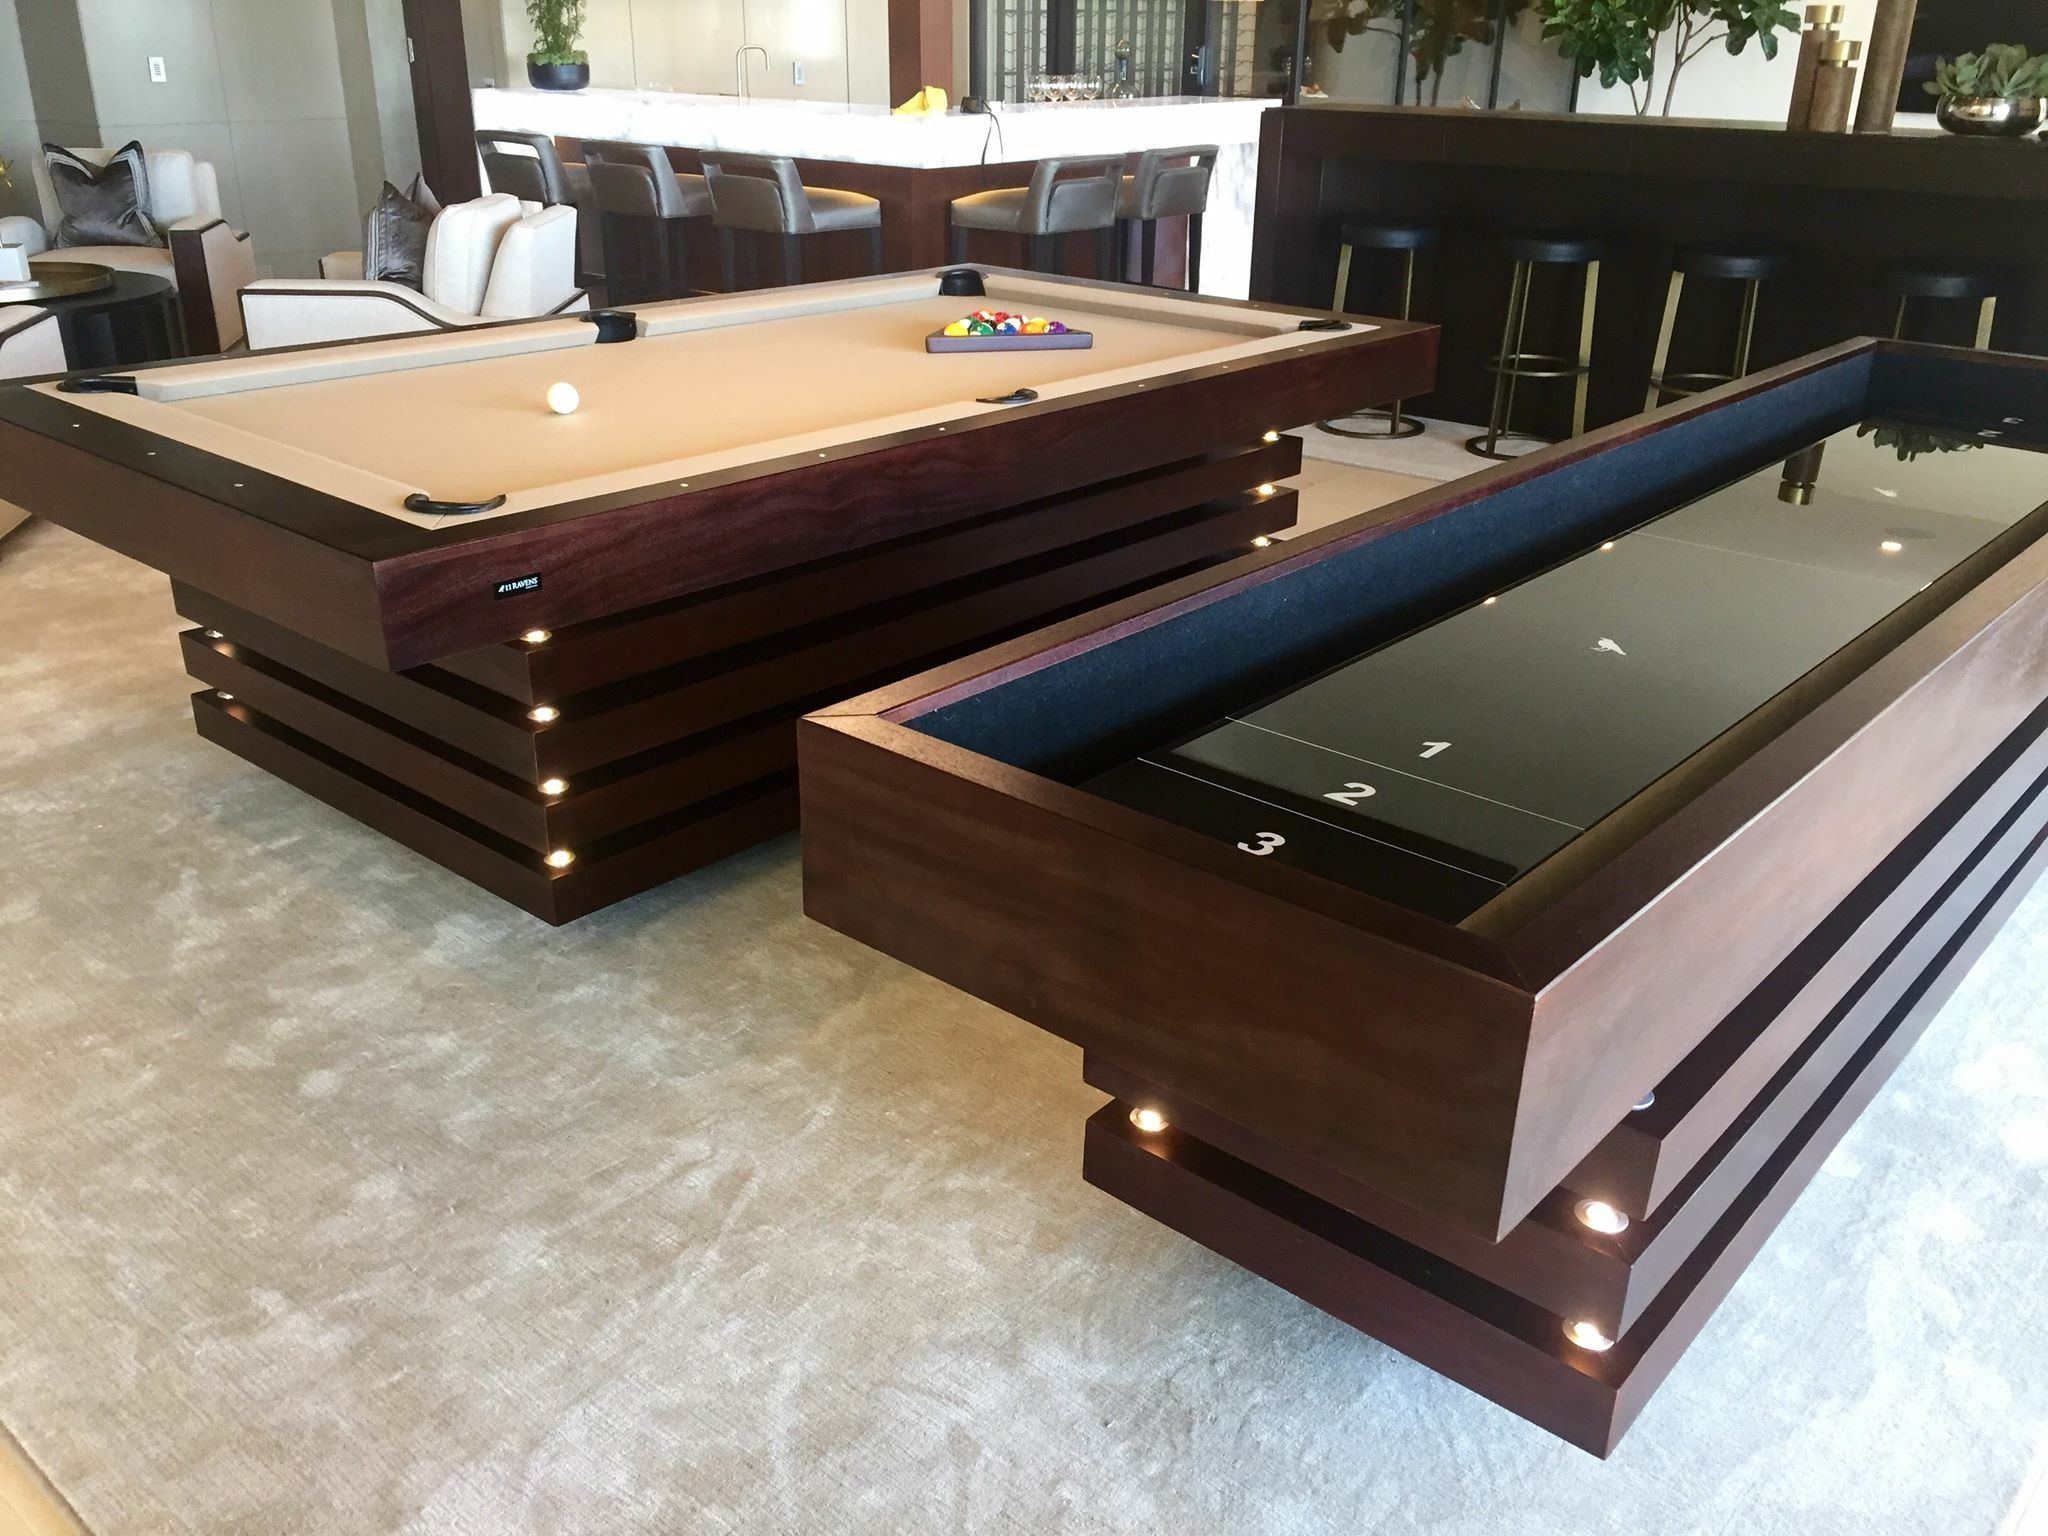 Arclight Billiards Table Luxury Modern Pool Tables The Most Exquisite Table Tennis Billiards Tables Modern Pool Table Billiard Table Billiards